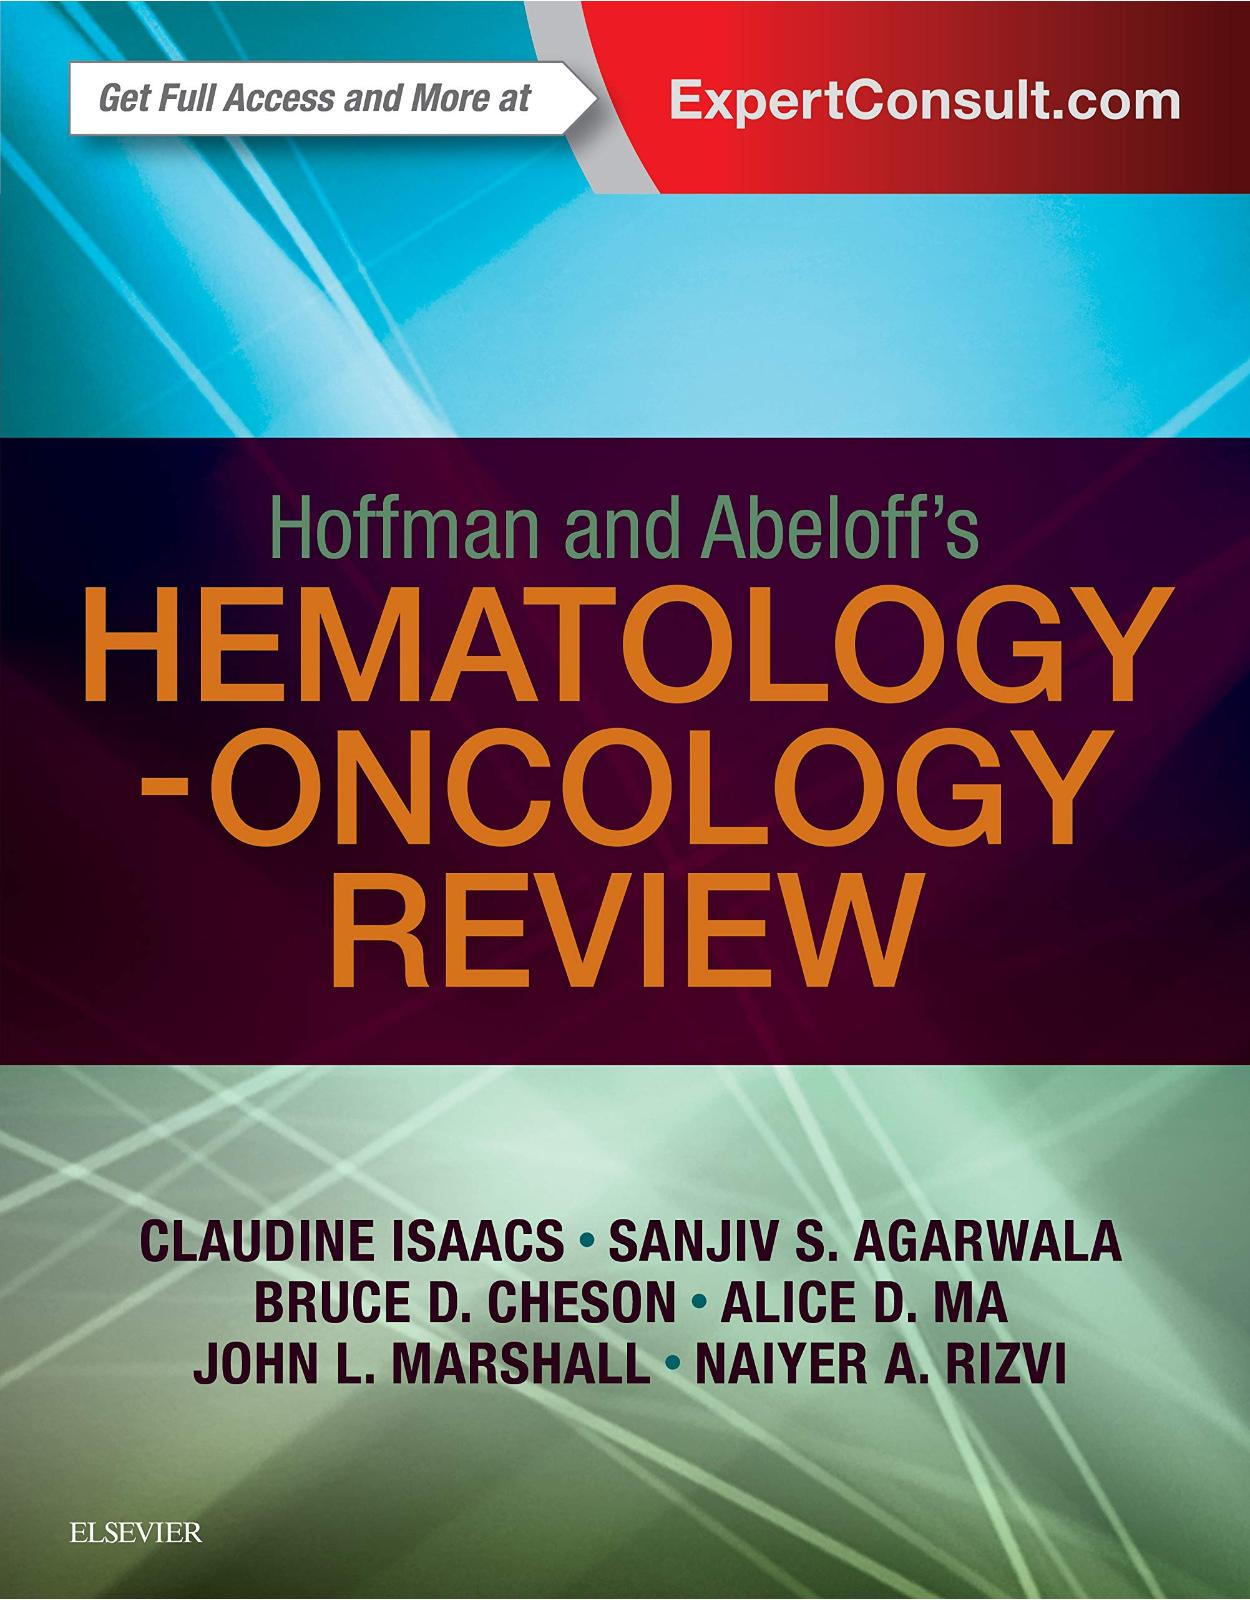 Hoffman and Abeloff's Hematology-Oncology Review